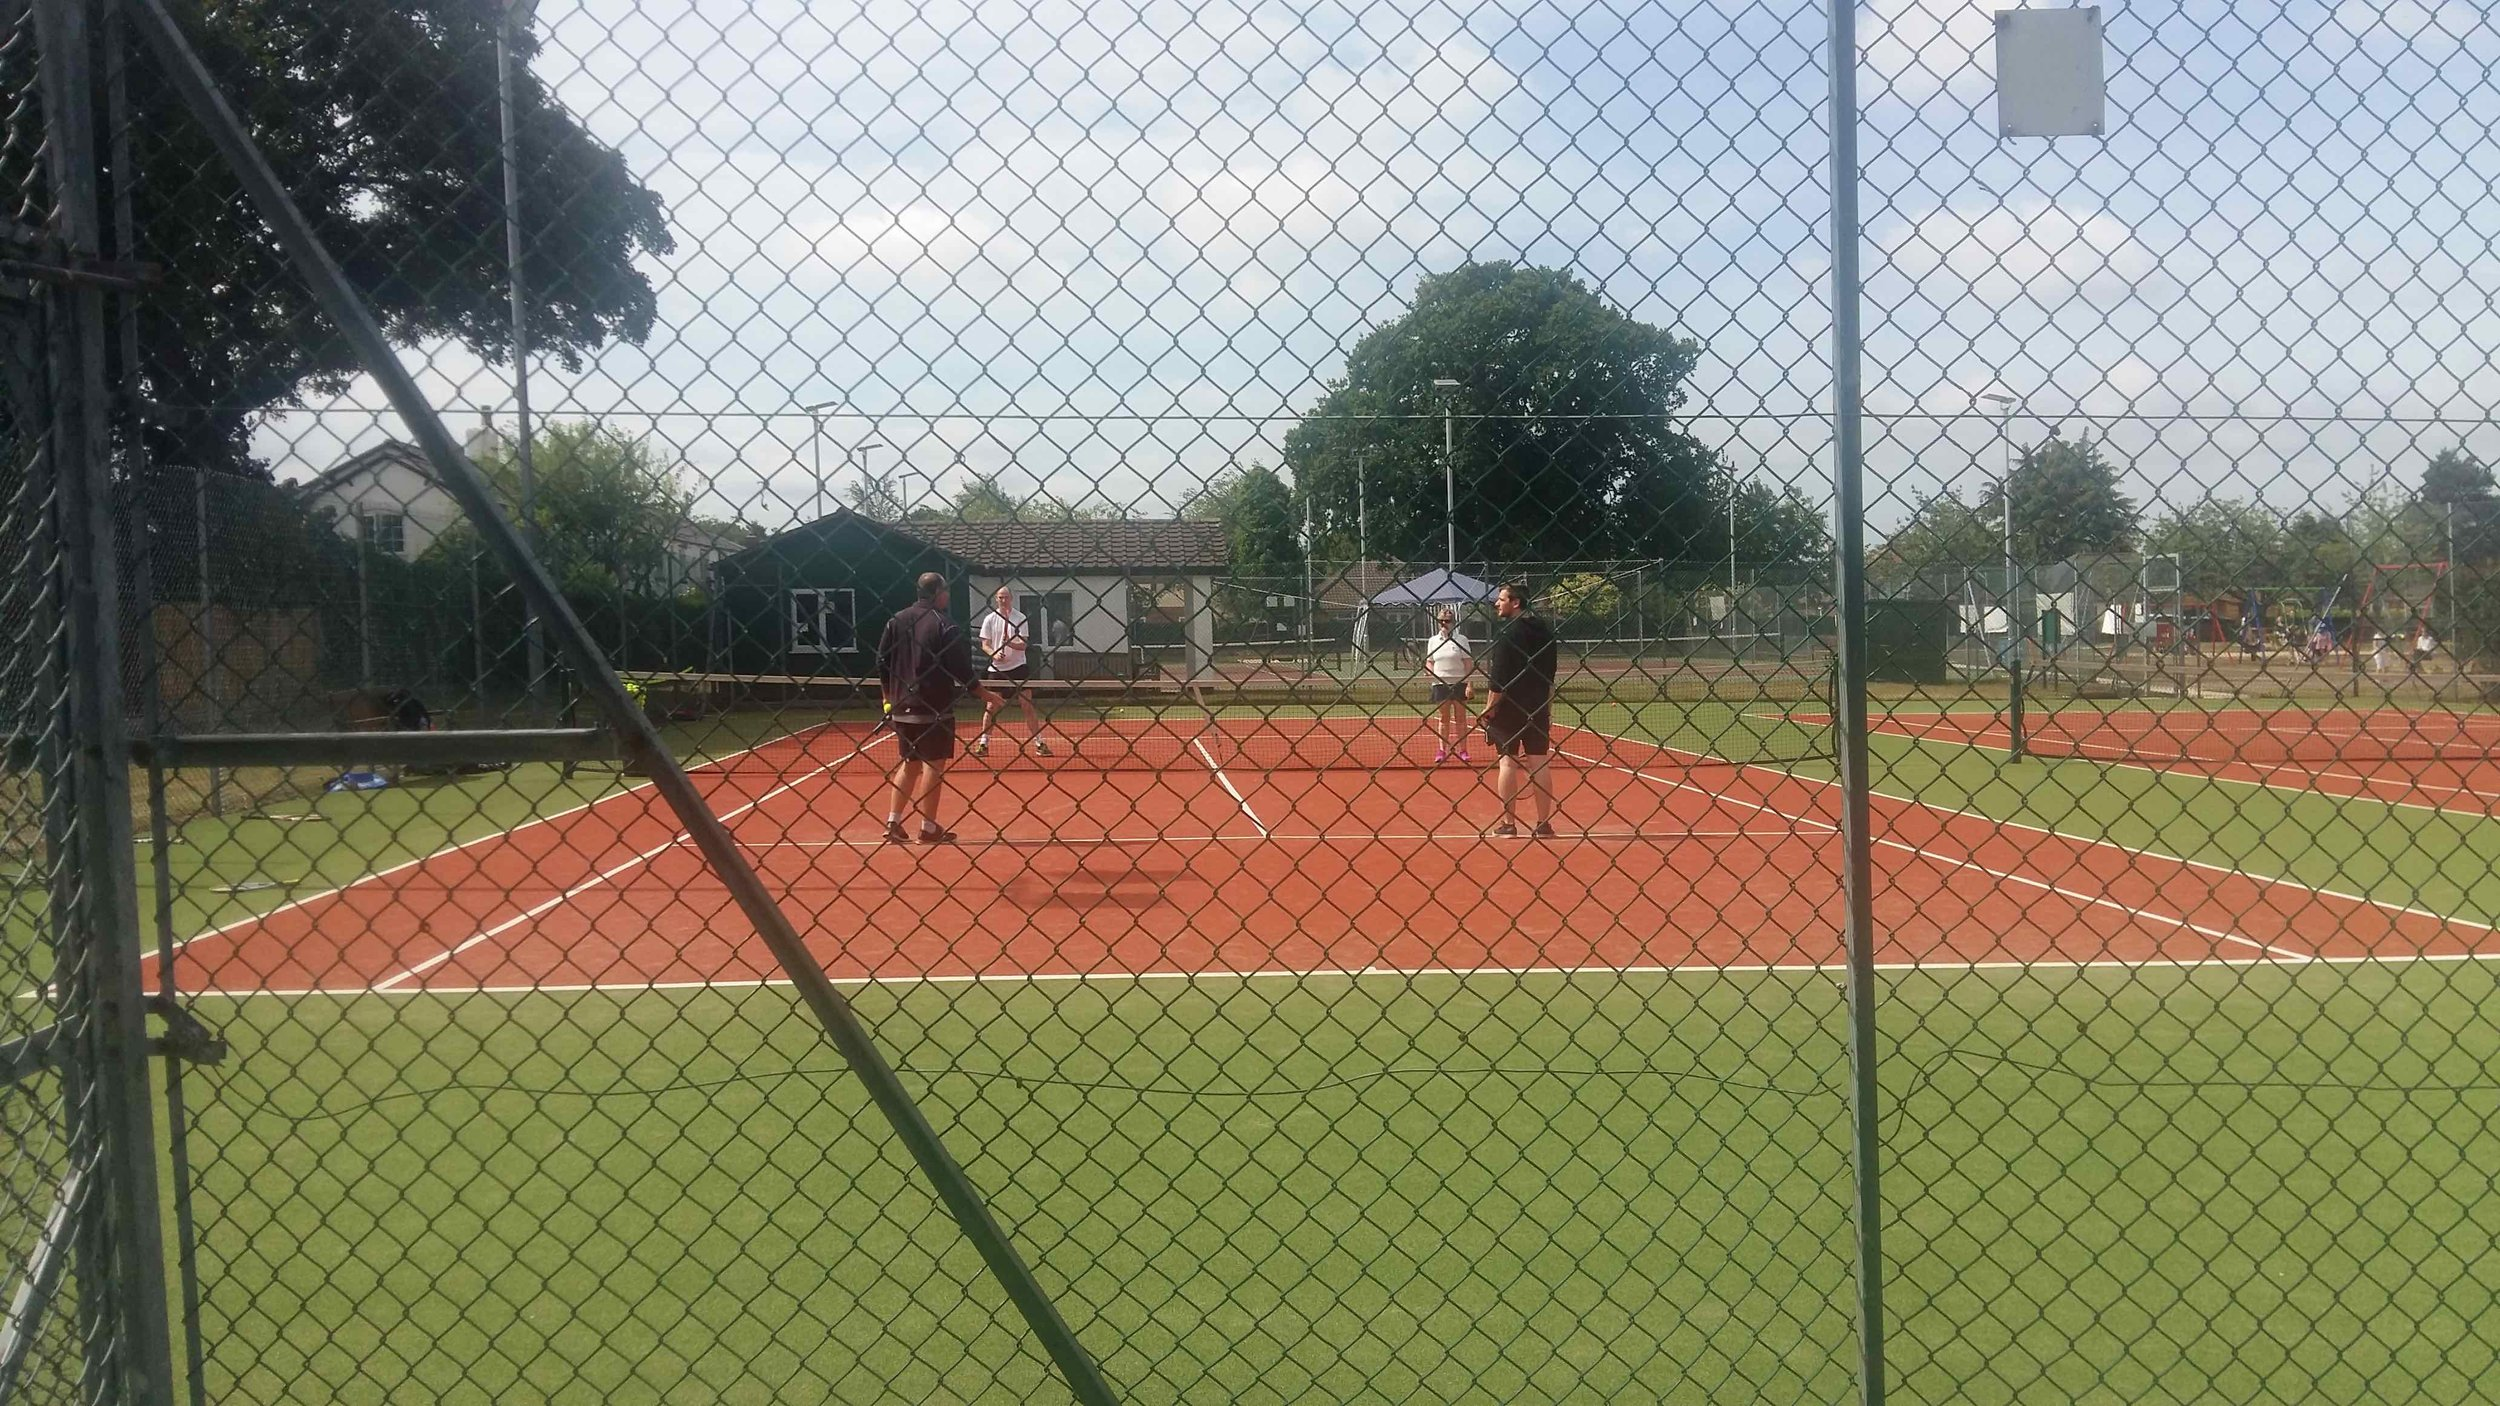 Players on the court at the club